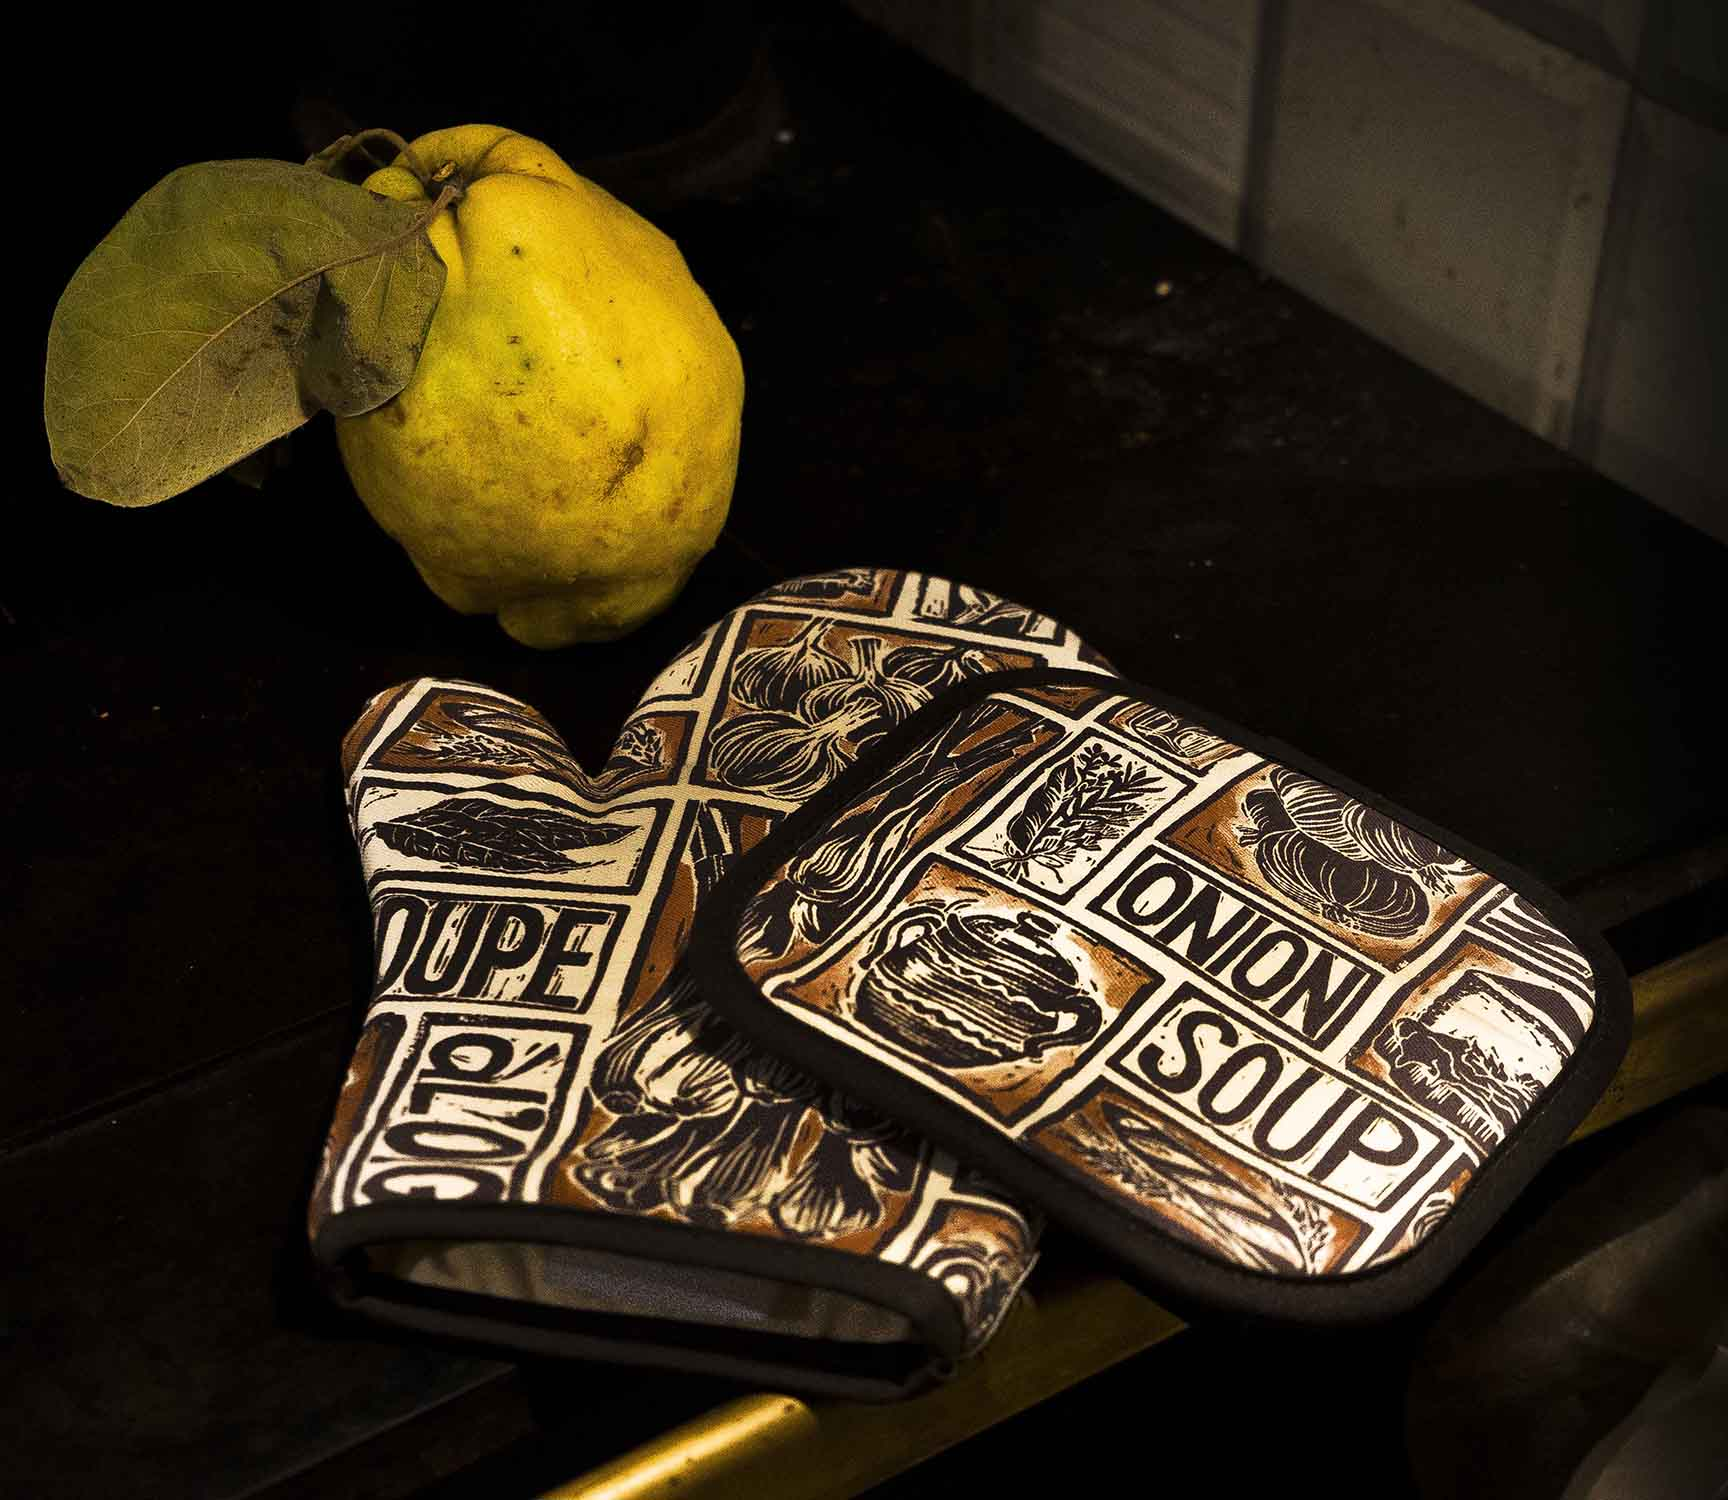 Berndt Unger Photography Kate Guy Prints Onion soup oven gloves